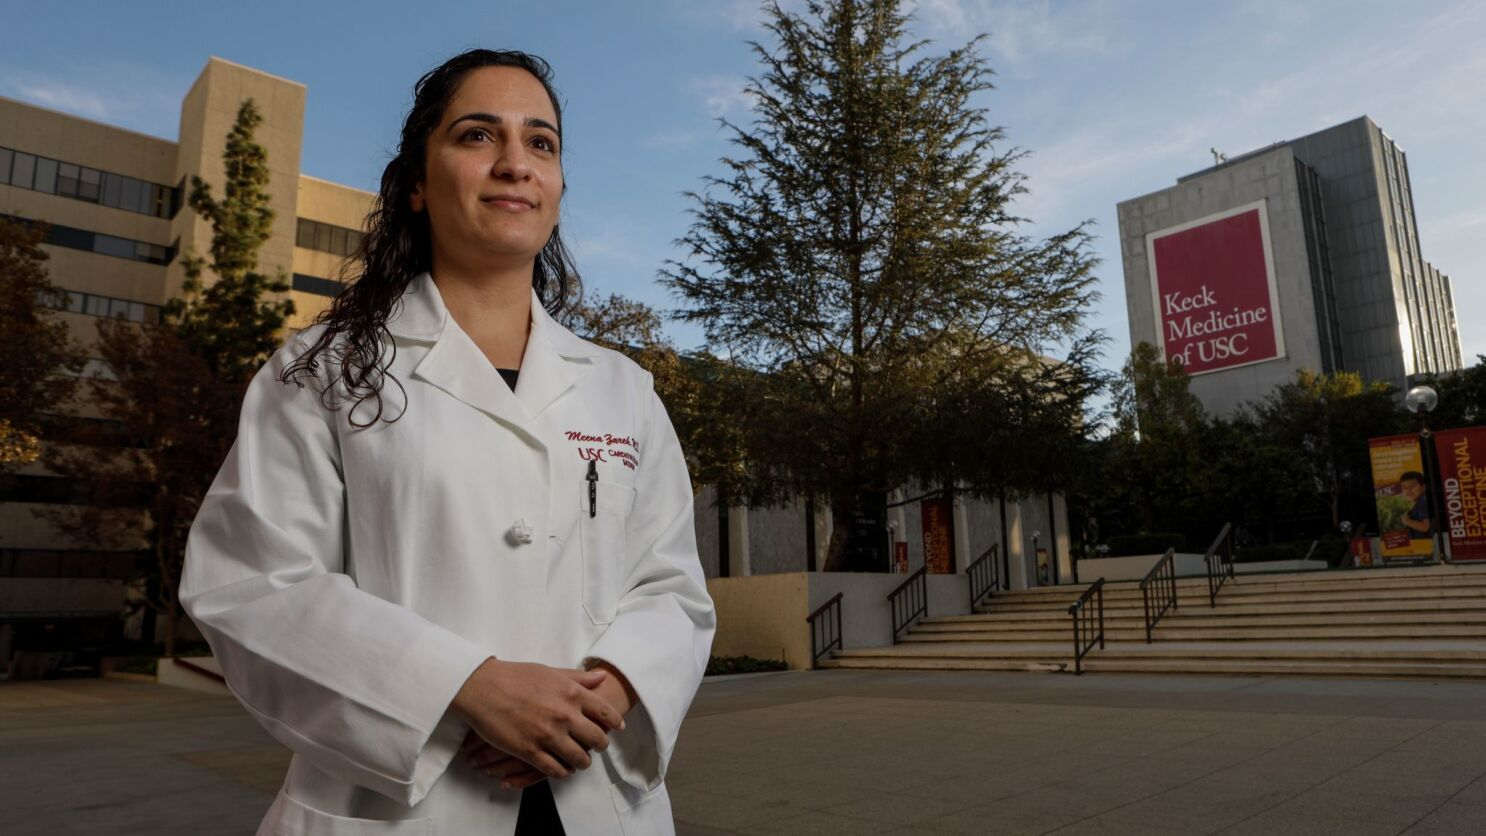 Doctor at County-USC hospital says she was sexually assaulted by a